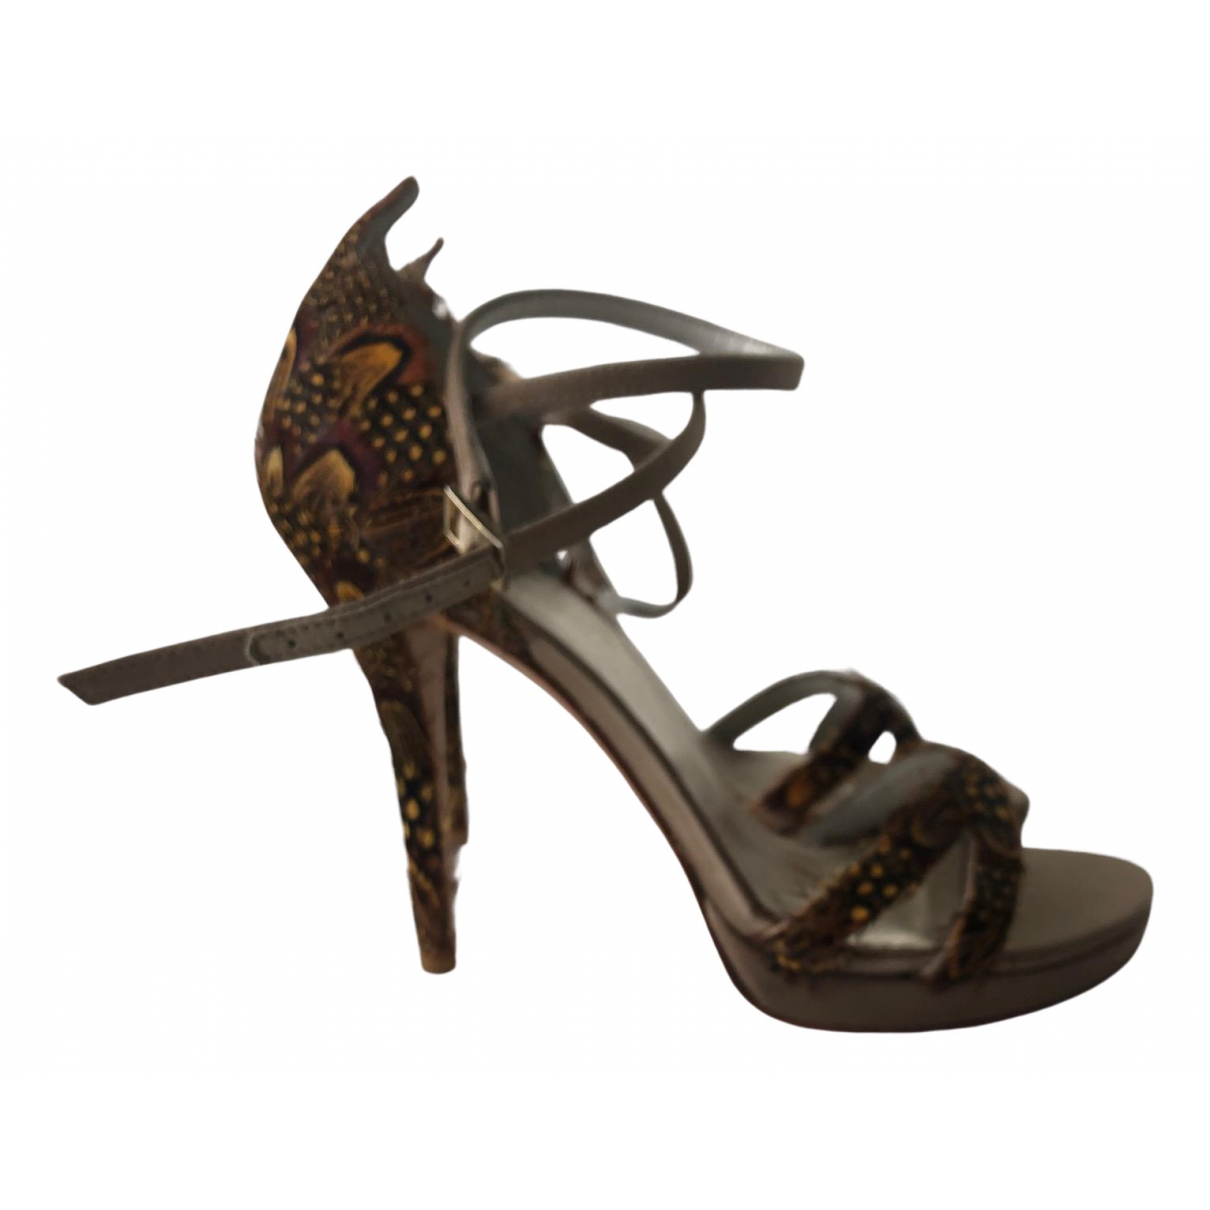 Stuart Weitzman N Gold Leather Sandals for Women 35 EU